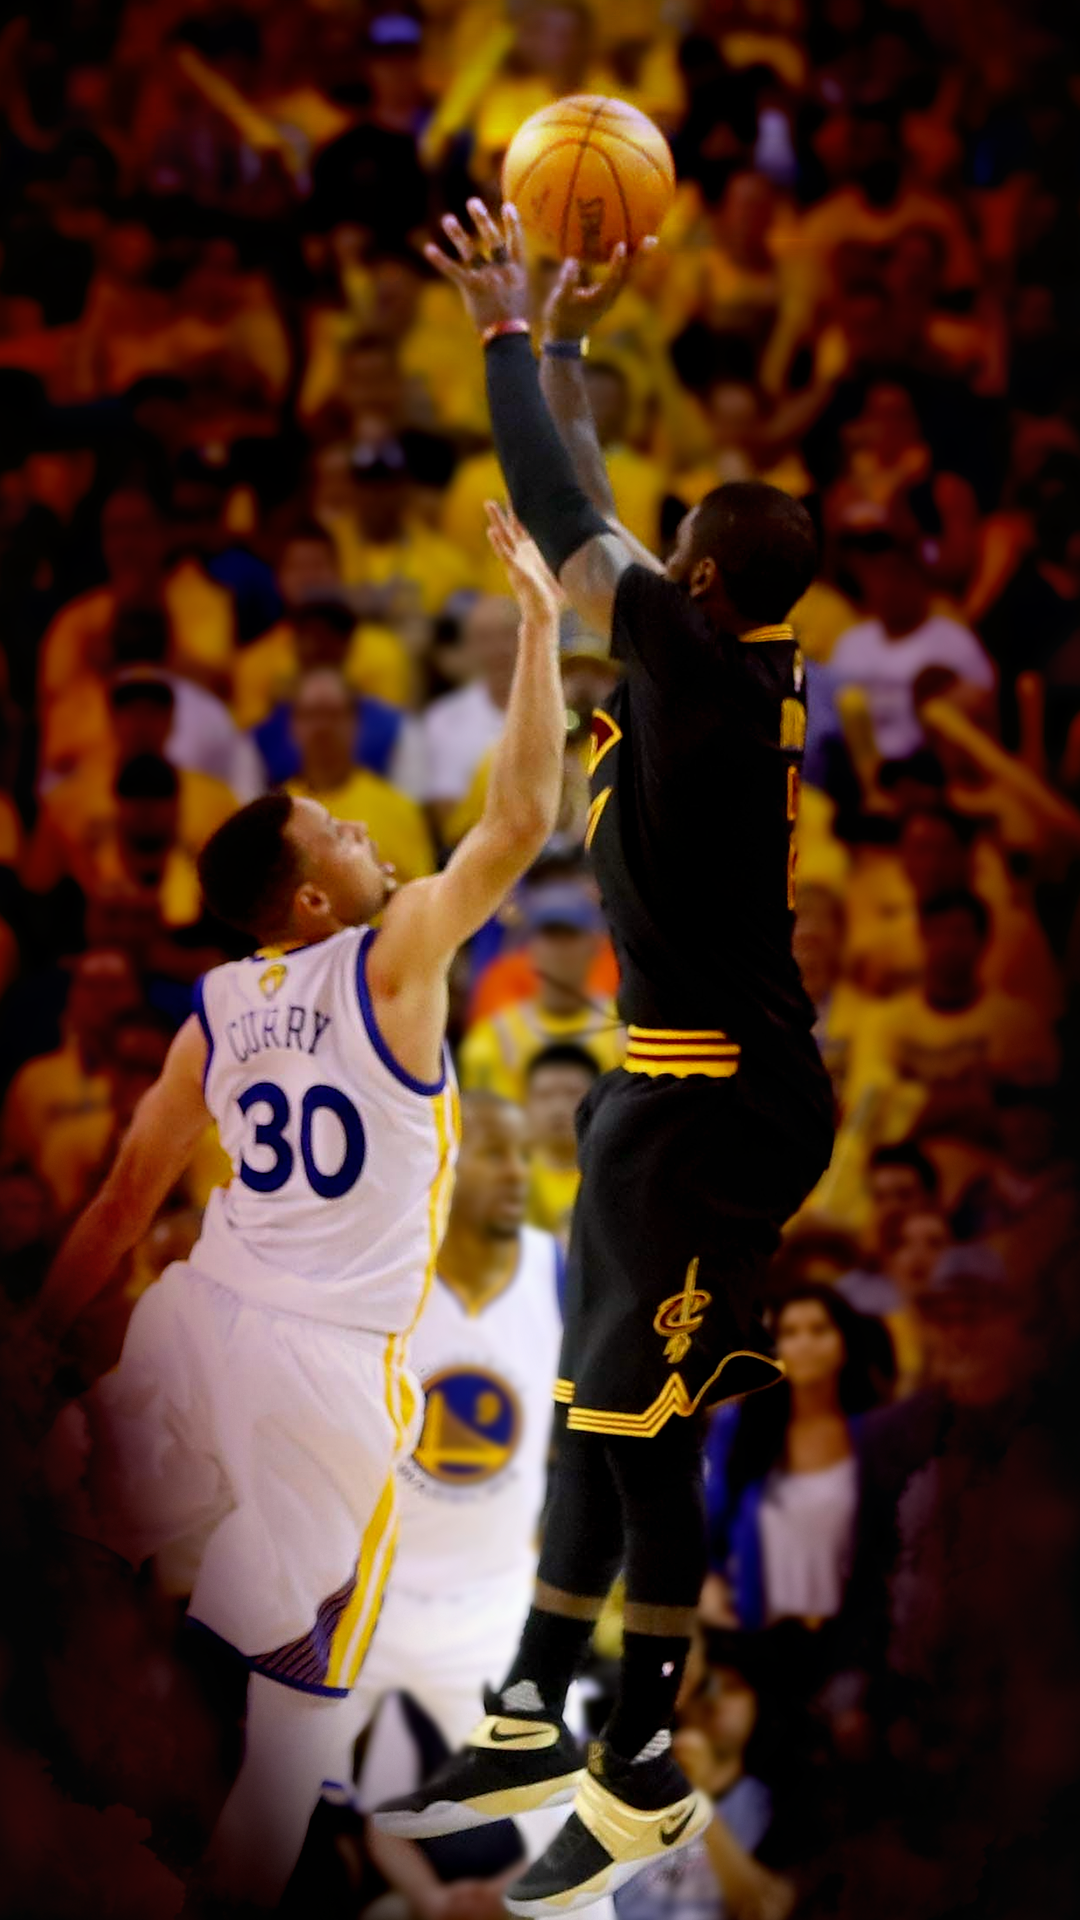 Kyrie Irving Nba Wallpapers High Definition » Hupages